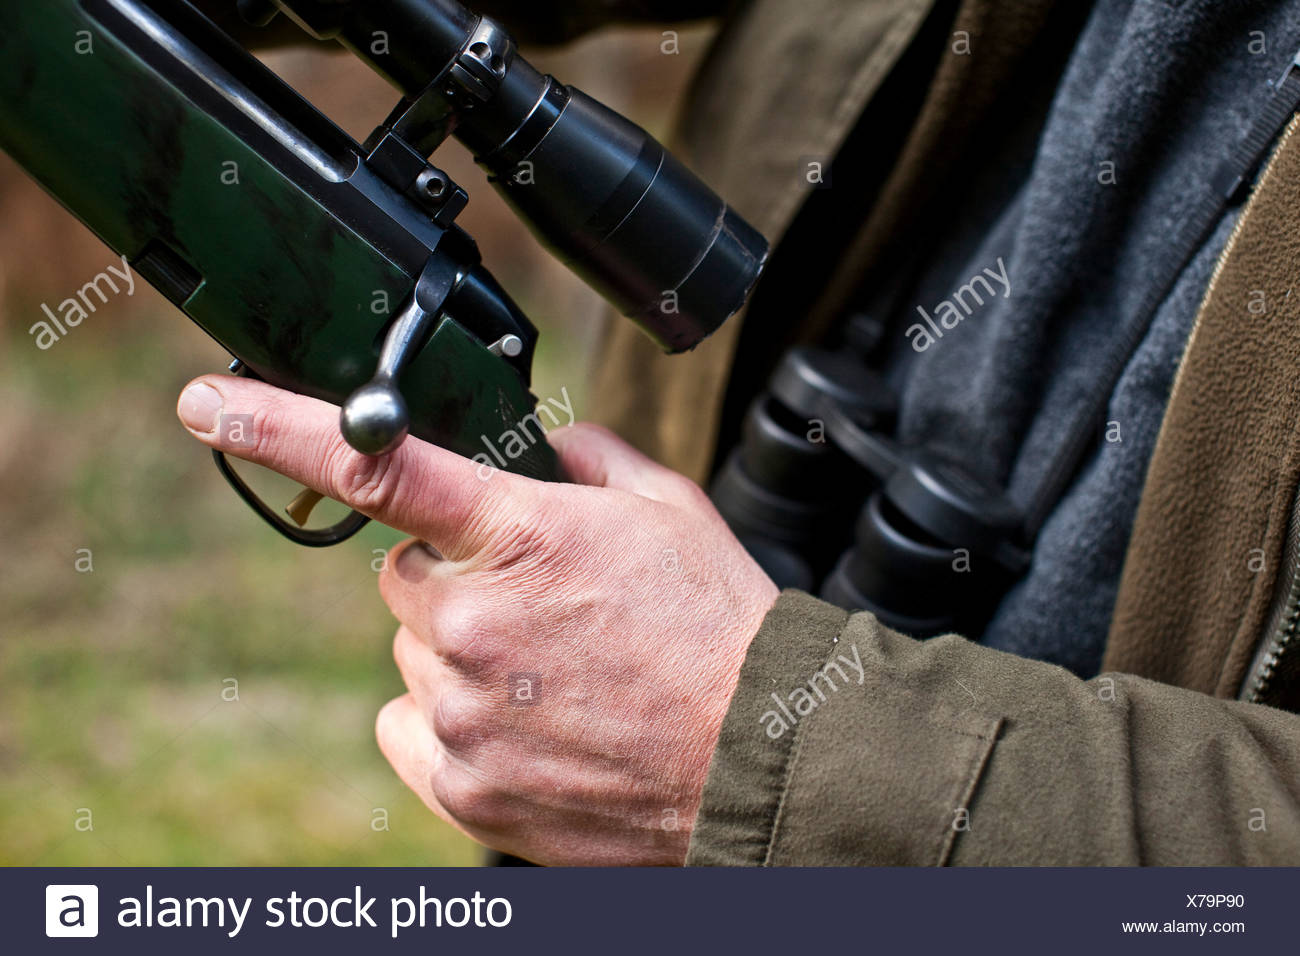 Man with his finger on the trigger of a gun, deer hunting in Thetford forest, UK - Stock Image